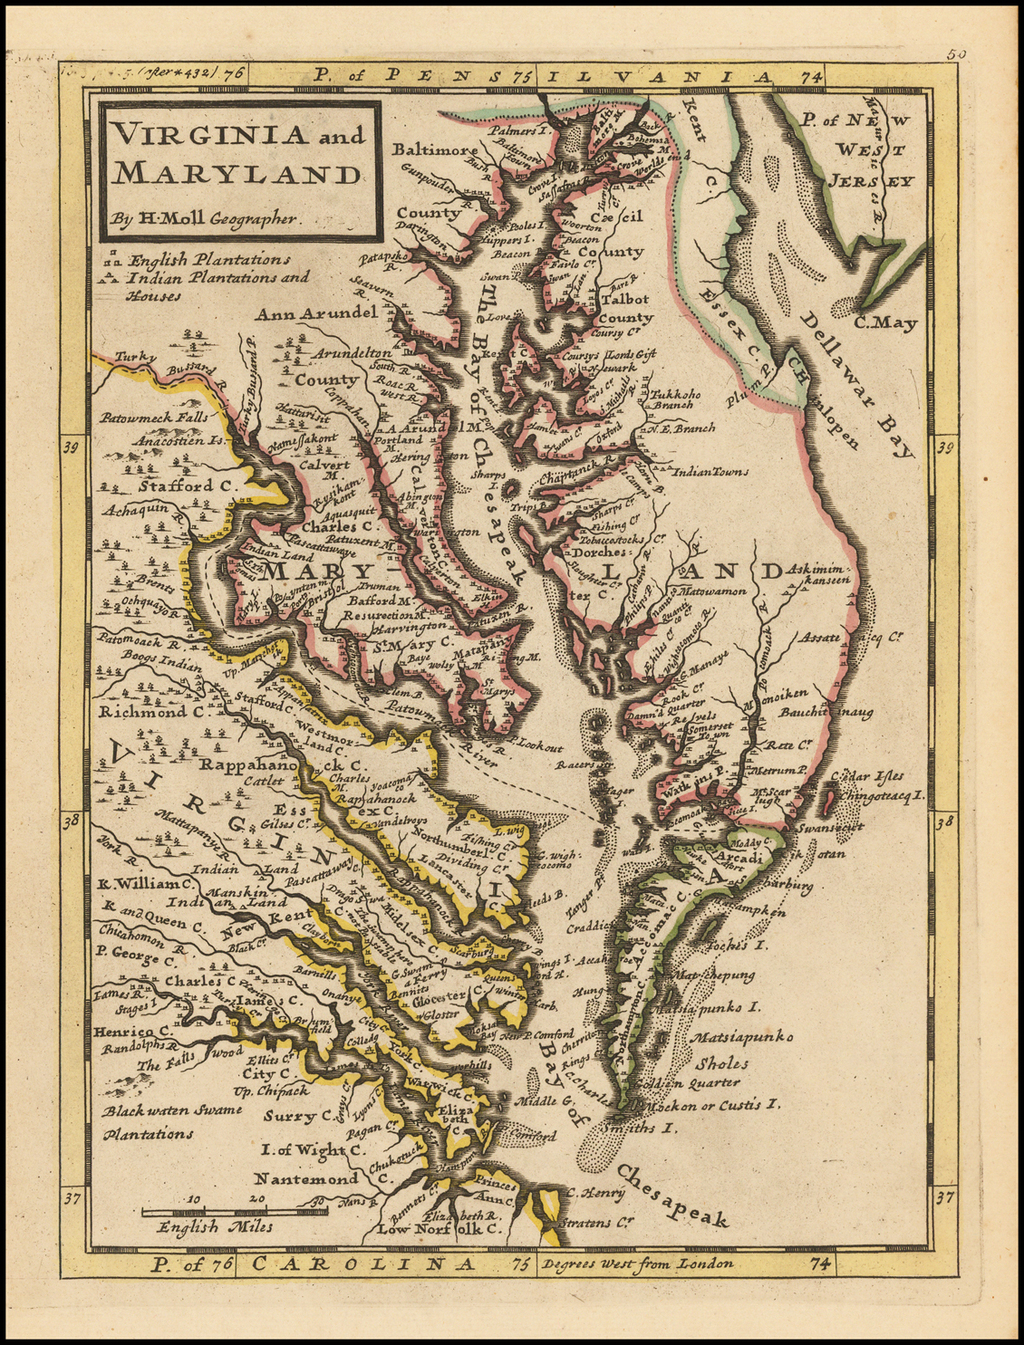 Virginia and Maryland.  By H. Moll Geographer By Herman Moll